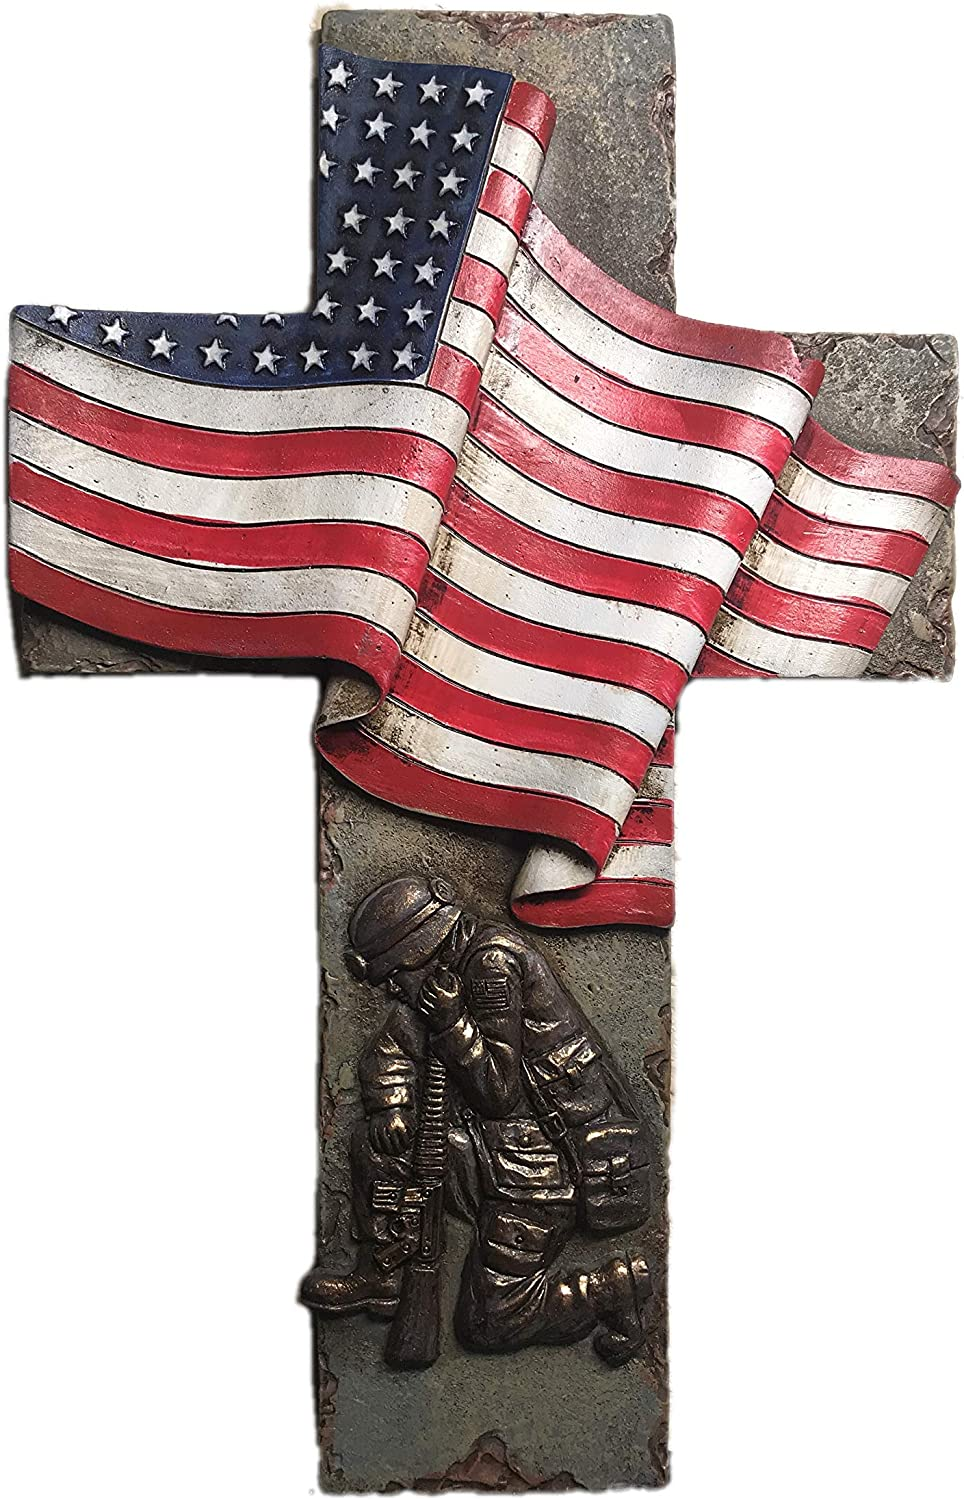 Polly House 10 Inch US Flag Cross with Praying Soldier Honoring Military Soldier 7435